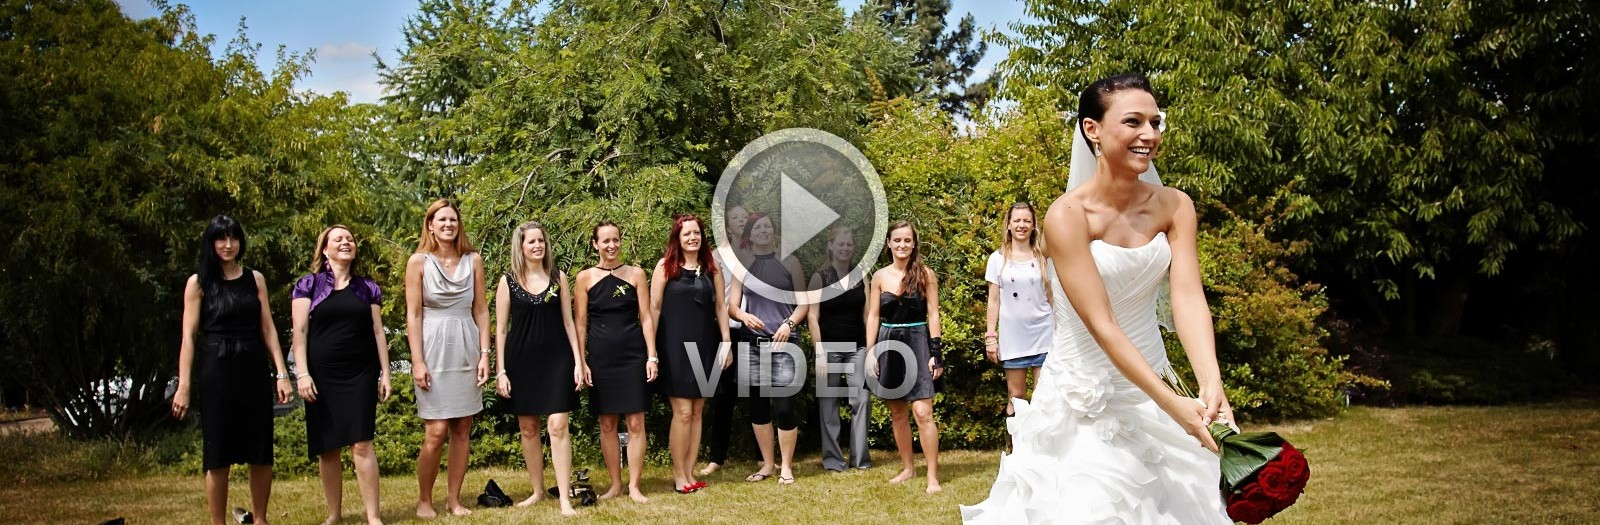 Katy + Míra - 8.6.2012 - Video